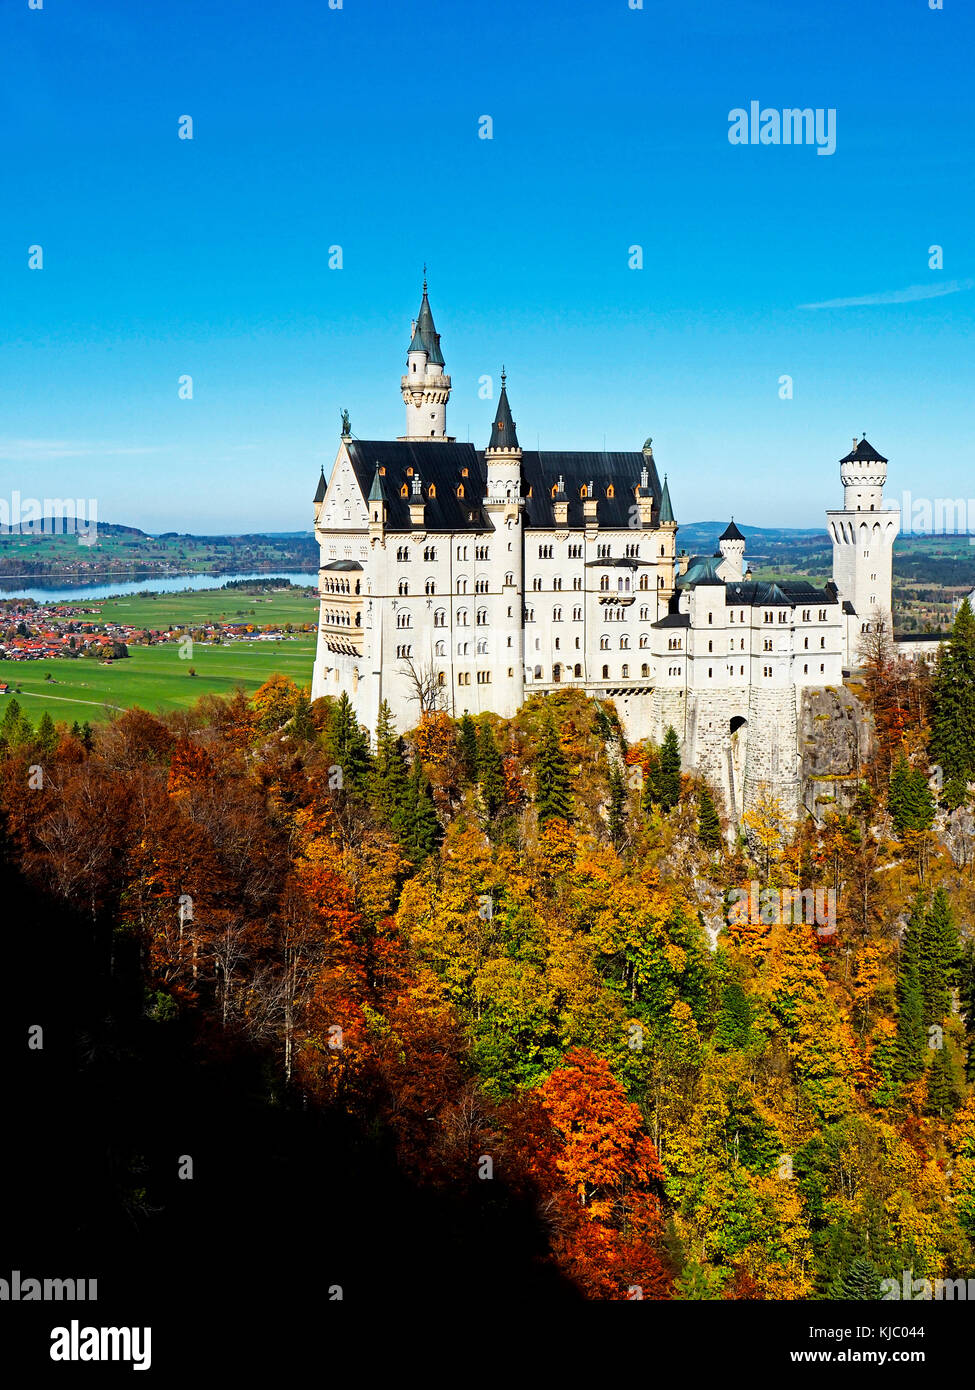 Mad King Ludwig's Neuschwanstein Castle in Bavaria, Germany. - Stock Image